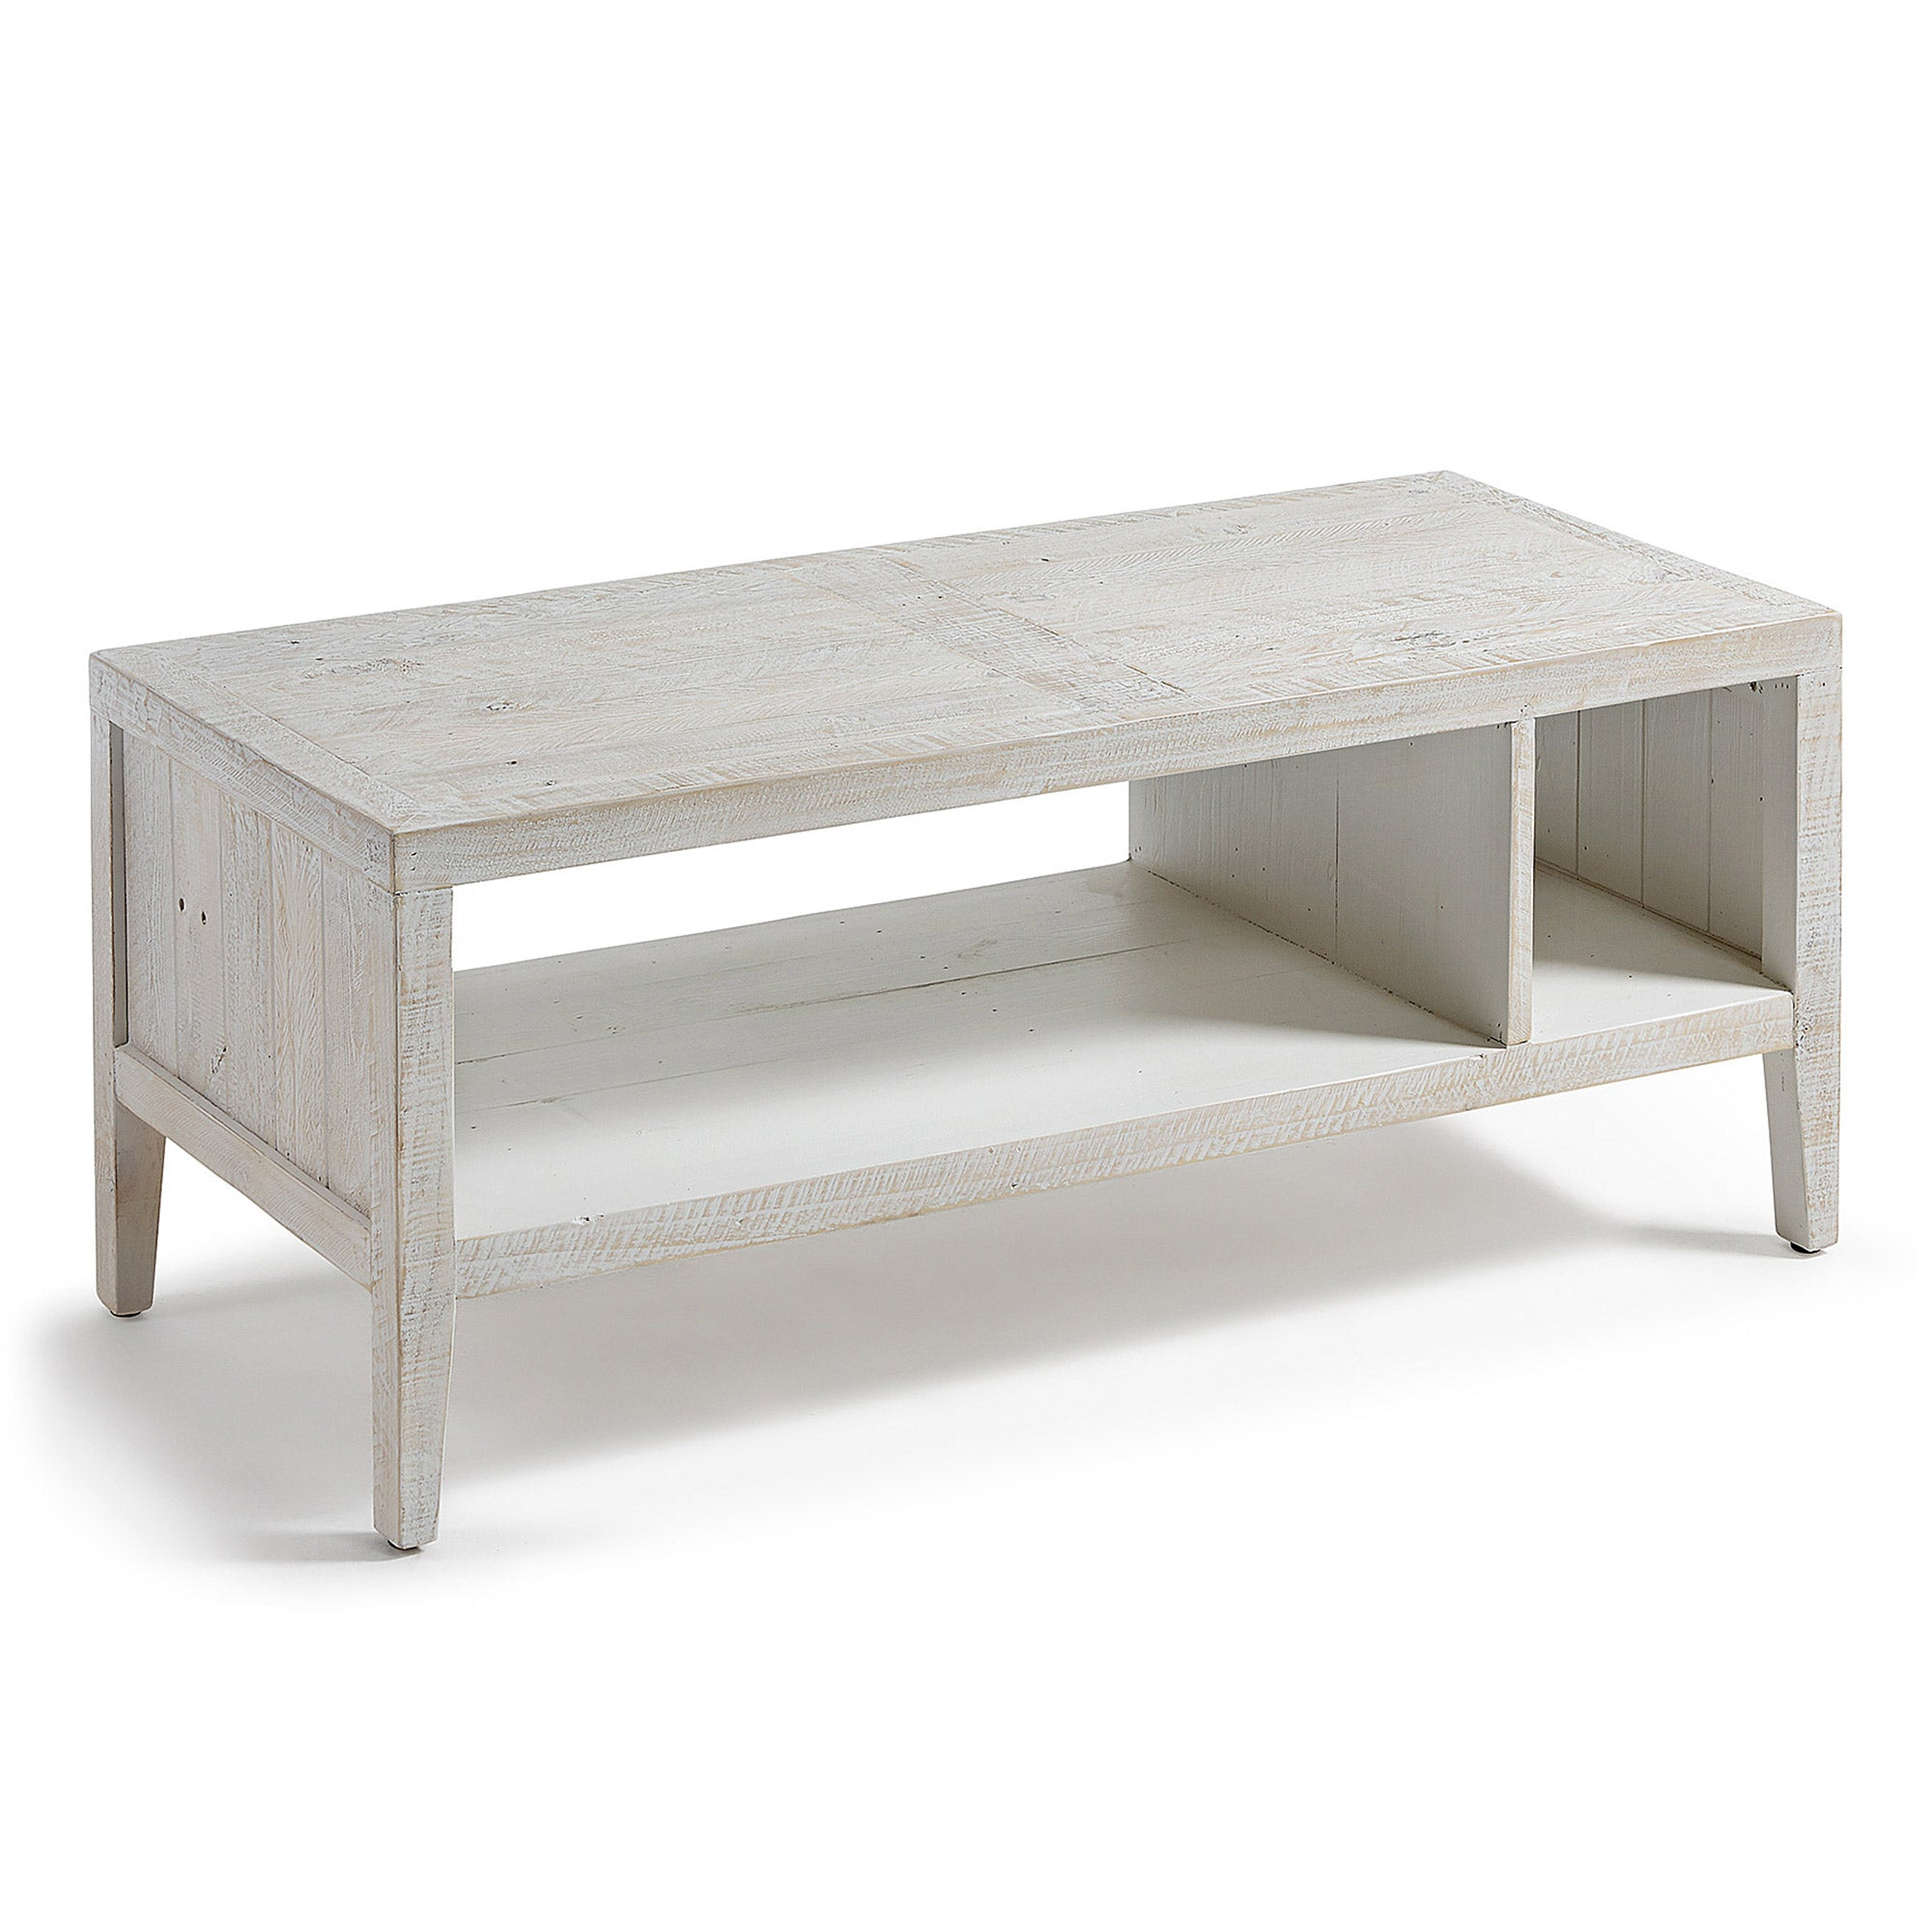 Xeromy Coffee Table -White, Table - Home-Buy Interiors